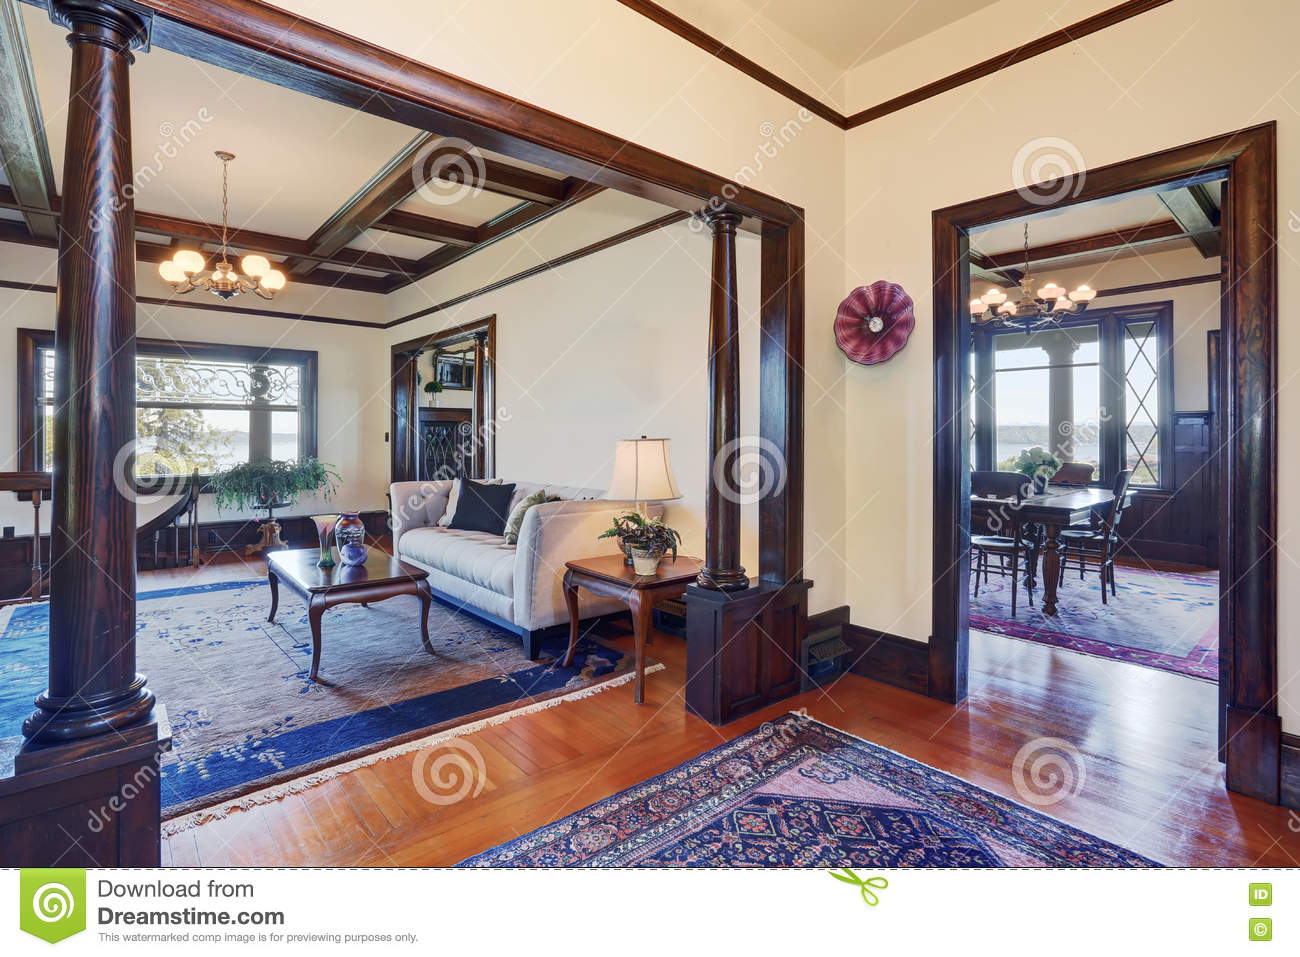 Open Floor Plan Of Living Room And Dining Room In Old Style House